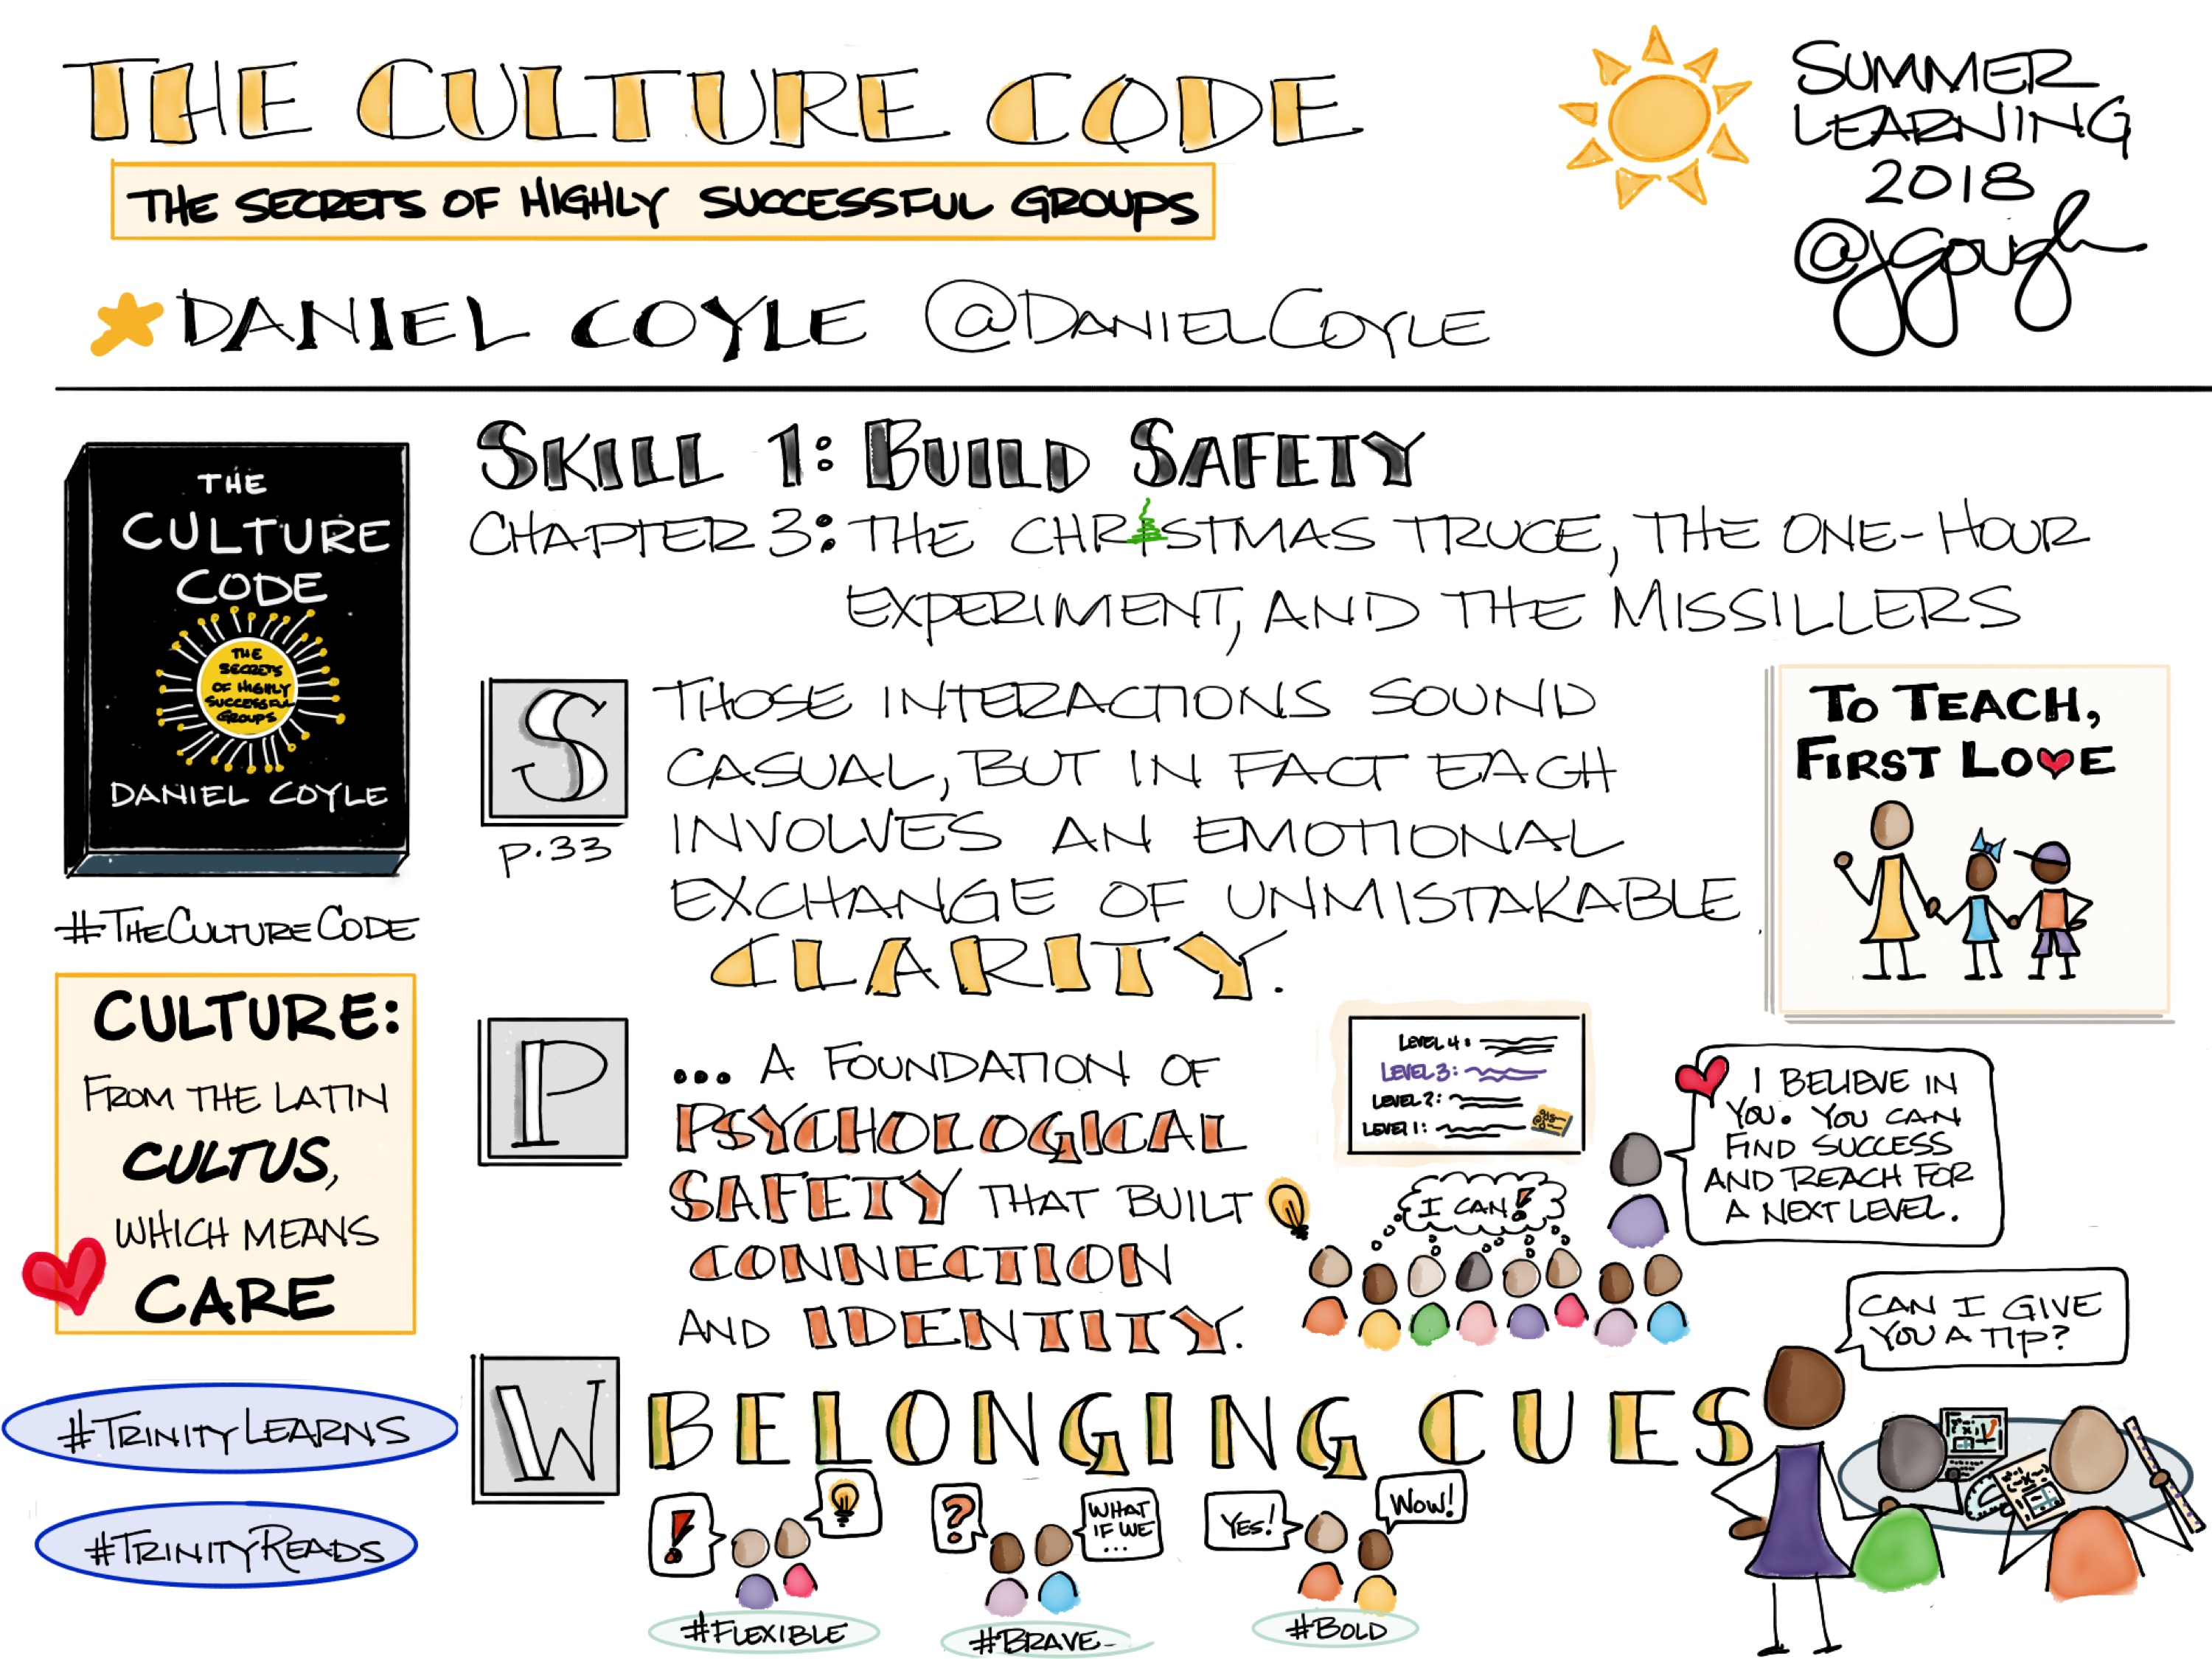 #TheCultureCode by @DanielCoyle Skill 1: Build Safety Chapter 3: The Christmas Truce, the One-Hour Experiment, and the Missillers #TrinityLearns belonging cues contribute to identity building #TrinityReads